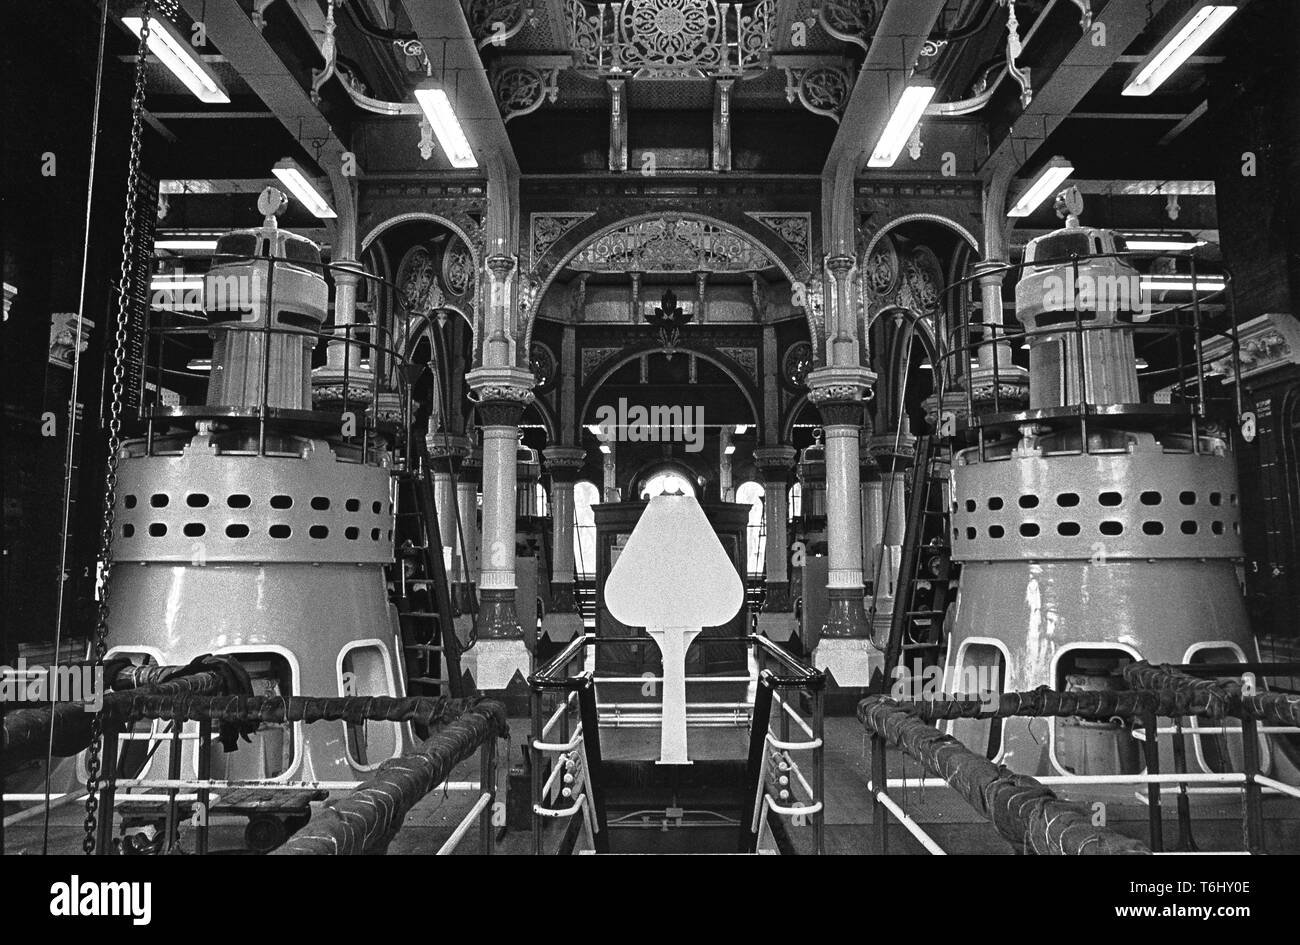 7/19  Tower Hamlets Abbey Mills Pumping Station 1979.nef - Stock Image